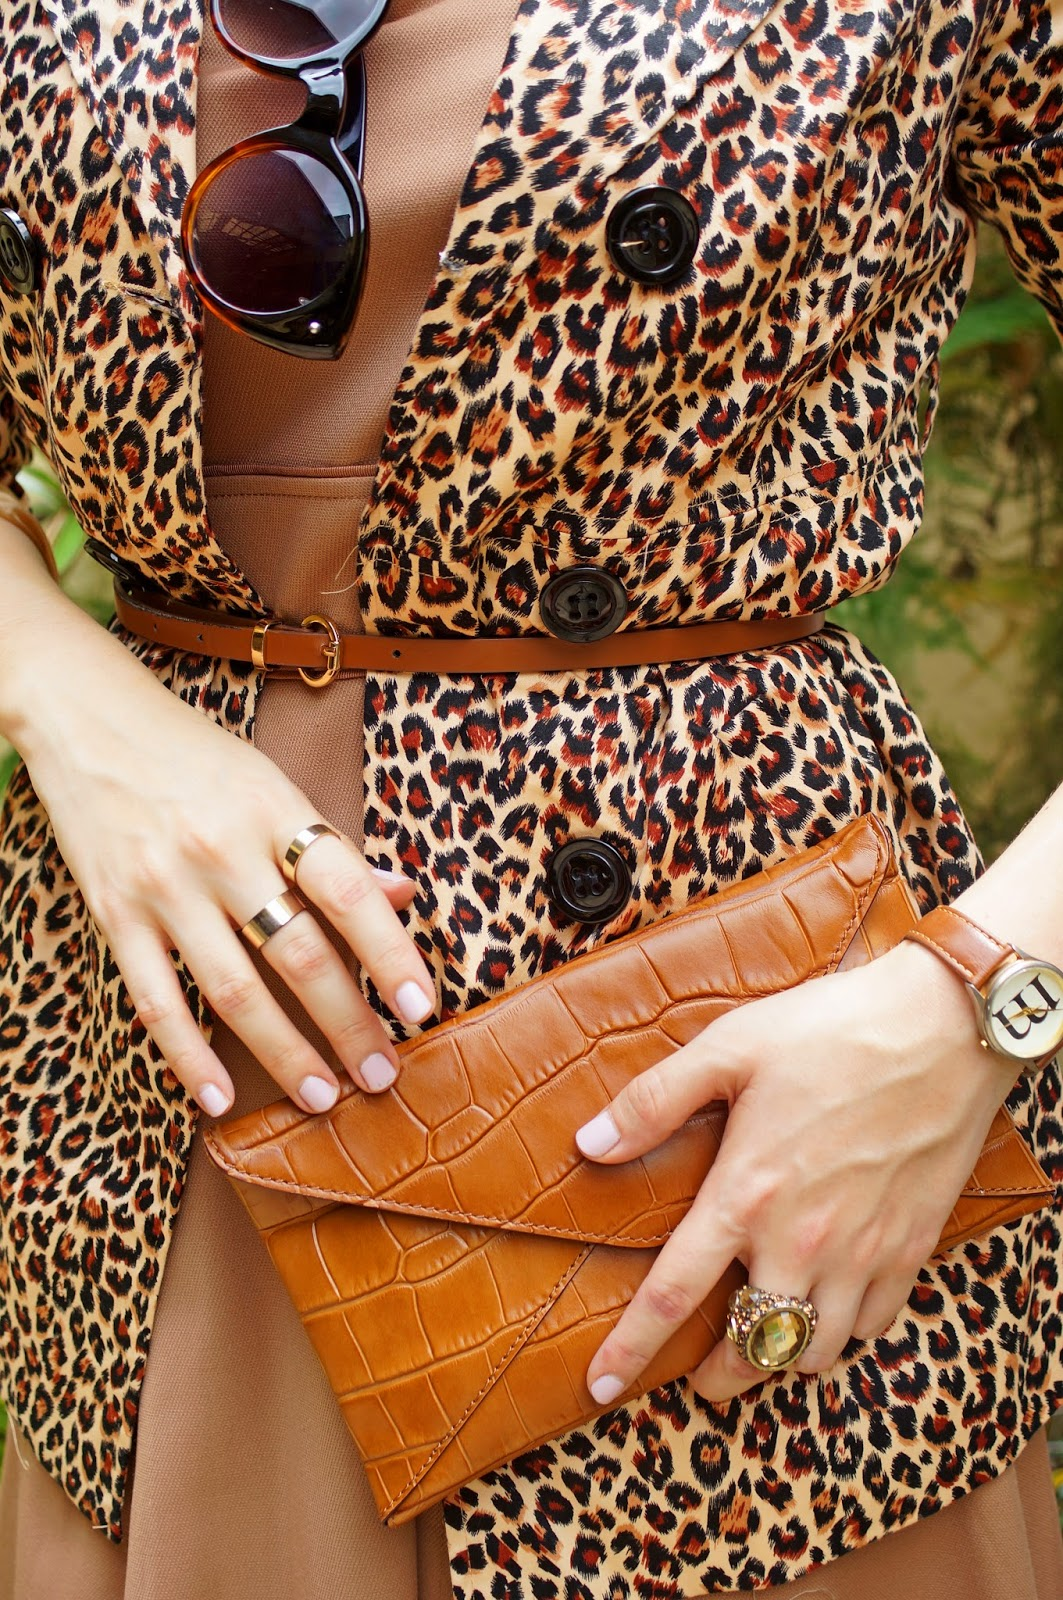 Loving all the brown, gold, and leopard of this outfit!